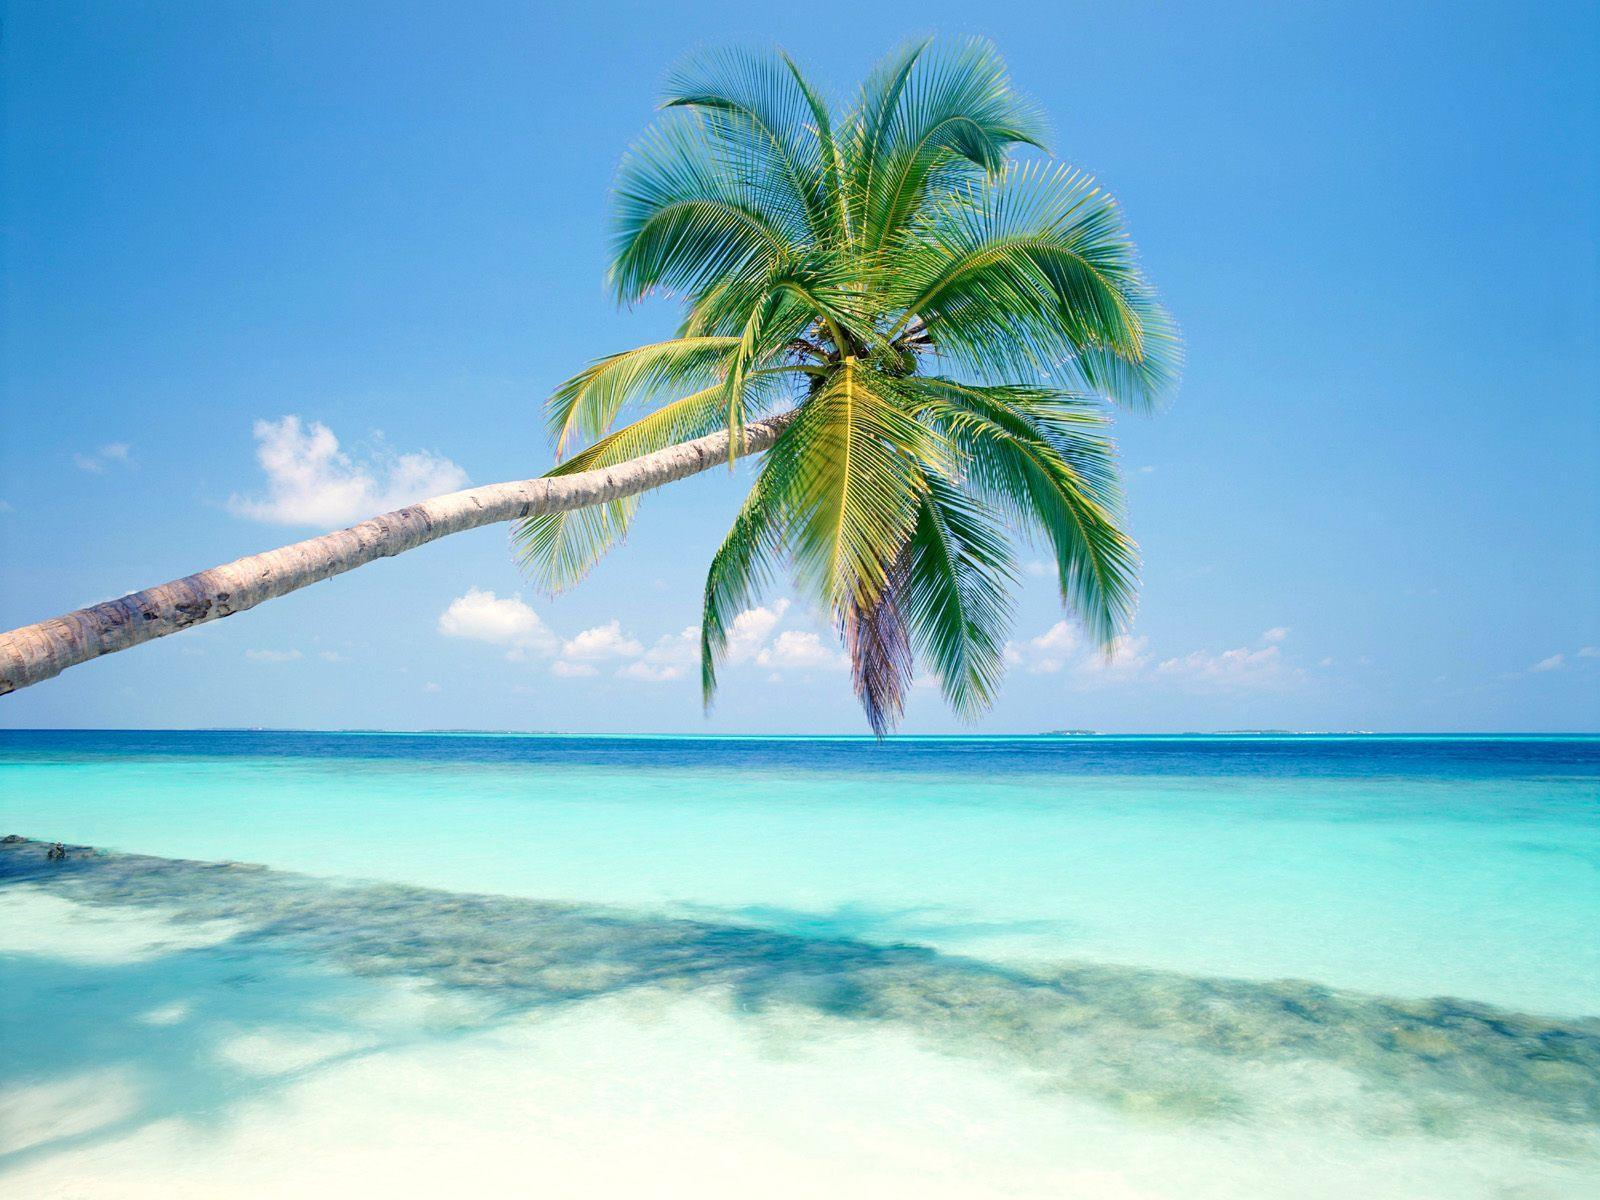 Tropical Island Wallpapers   Top Tropical Island Backgrounds 1600x1200